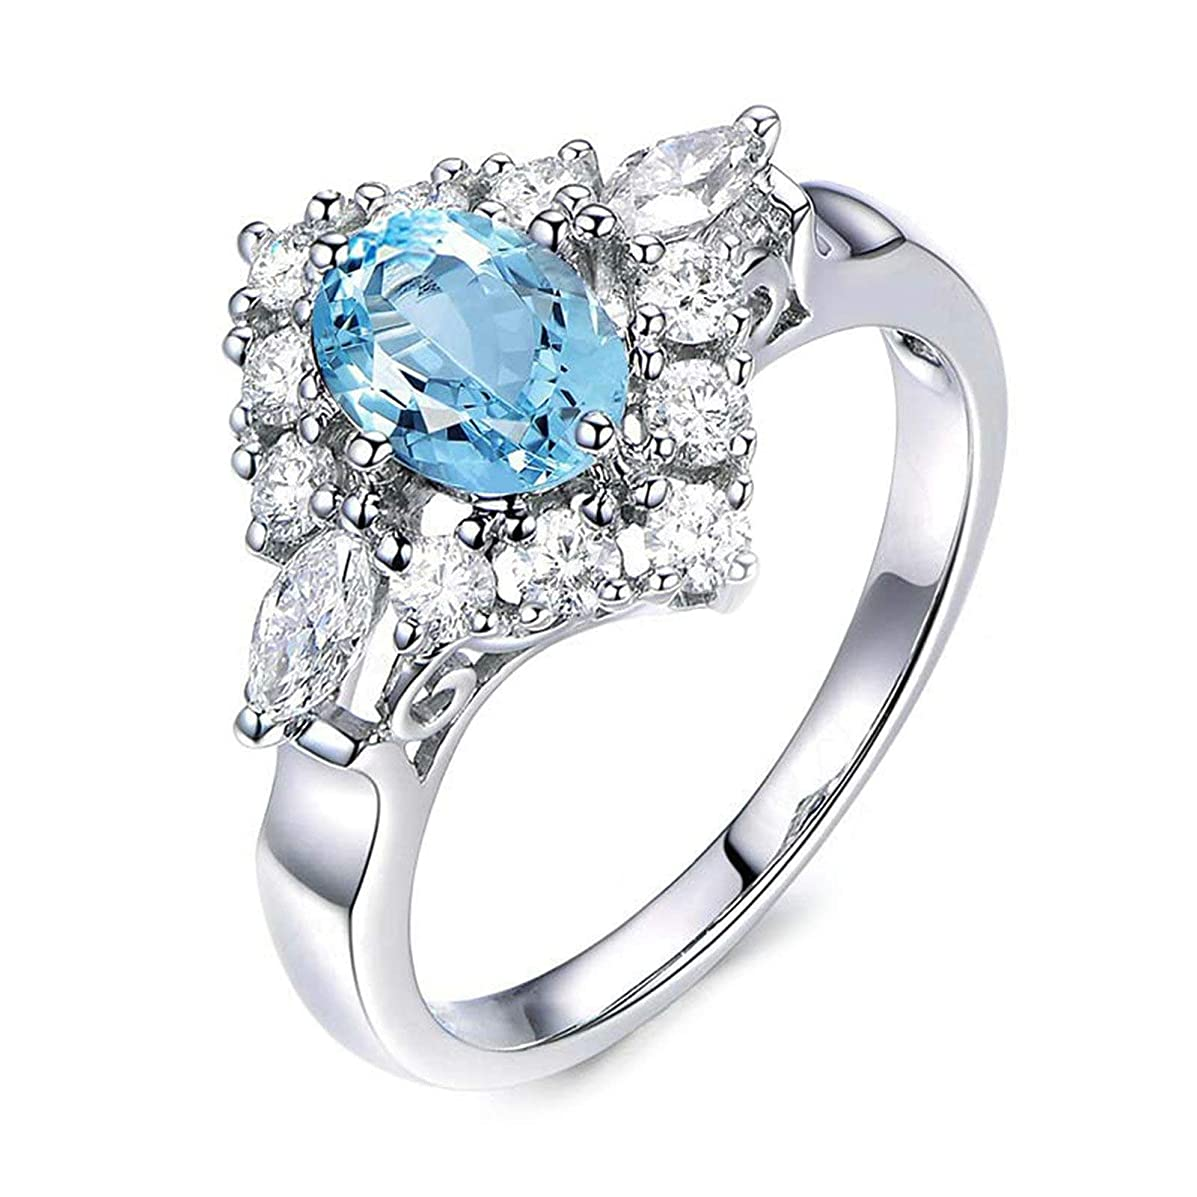 Bishilin s925 Sterling Silver Rings for Women Topaz Womens Rings 925 Sterling Silver Ring Engagement